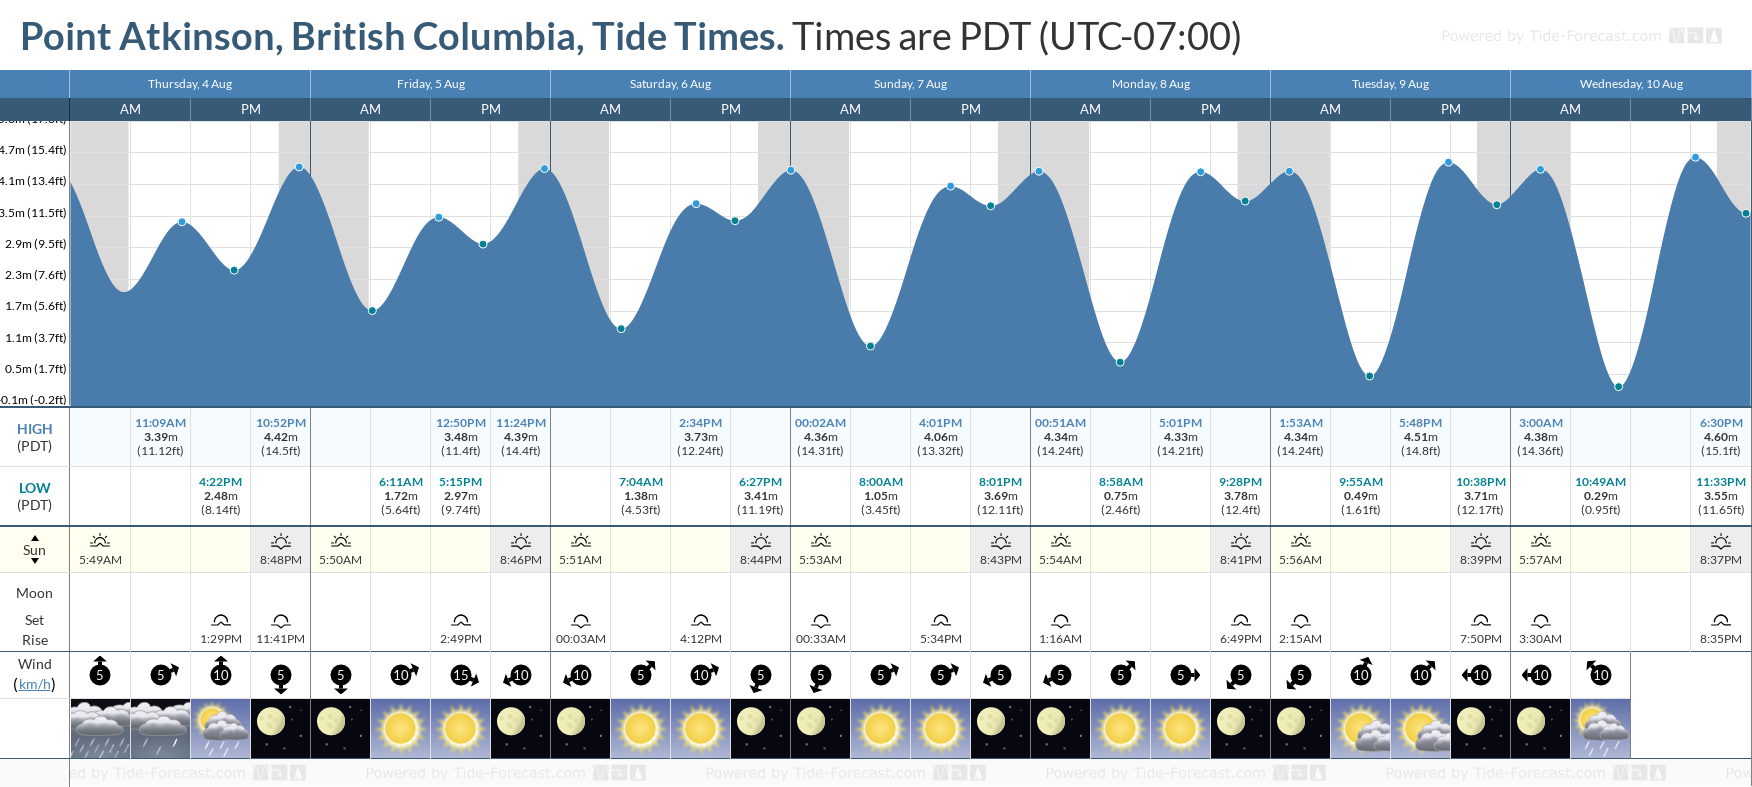 Point Atkinson, British Columbia Tide Chart including high and low tide tide times for the next 7 days